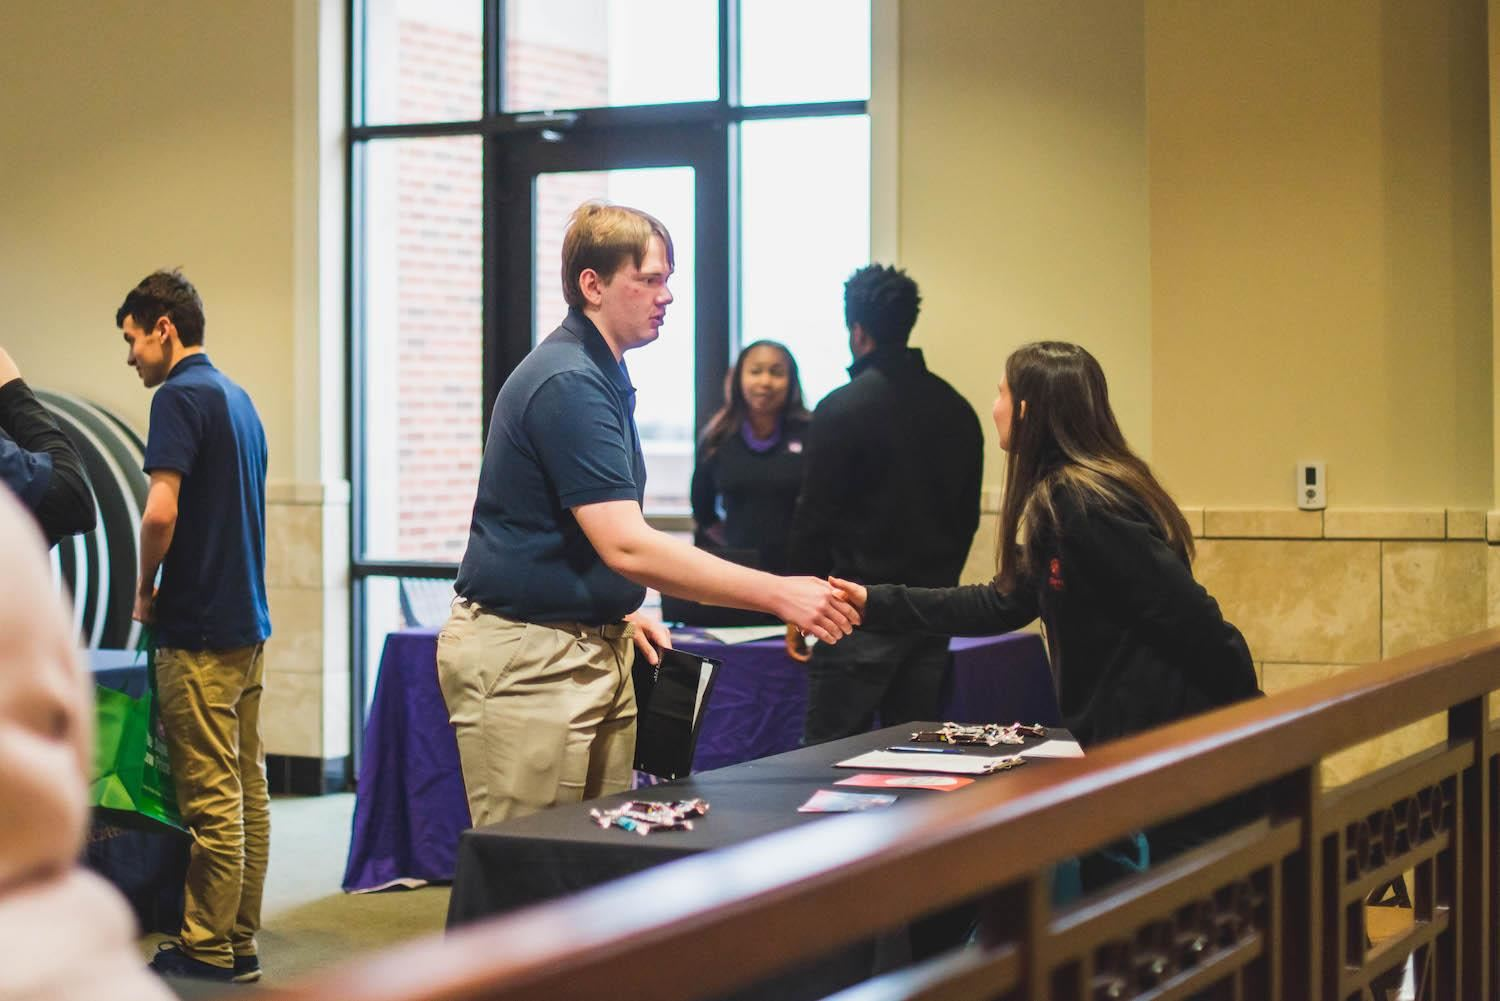 student shakes hands with potential employer at job fair